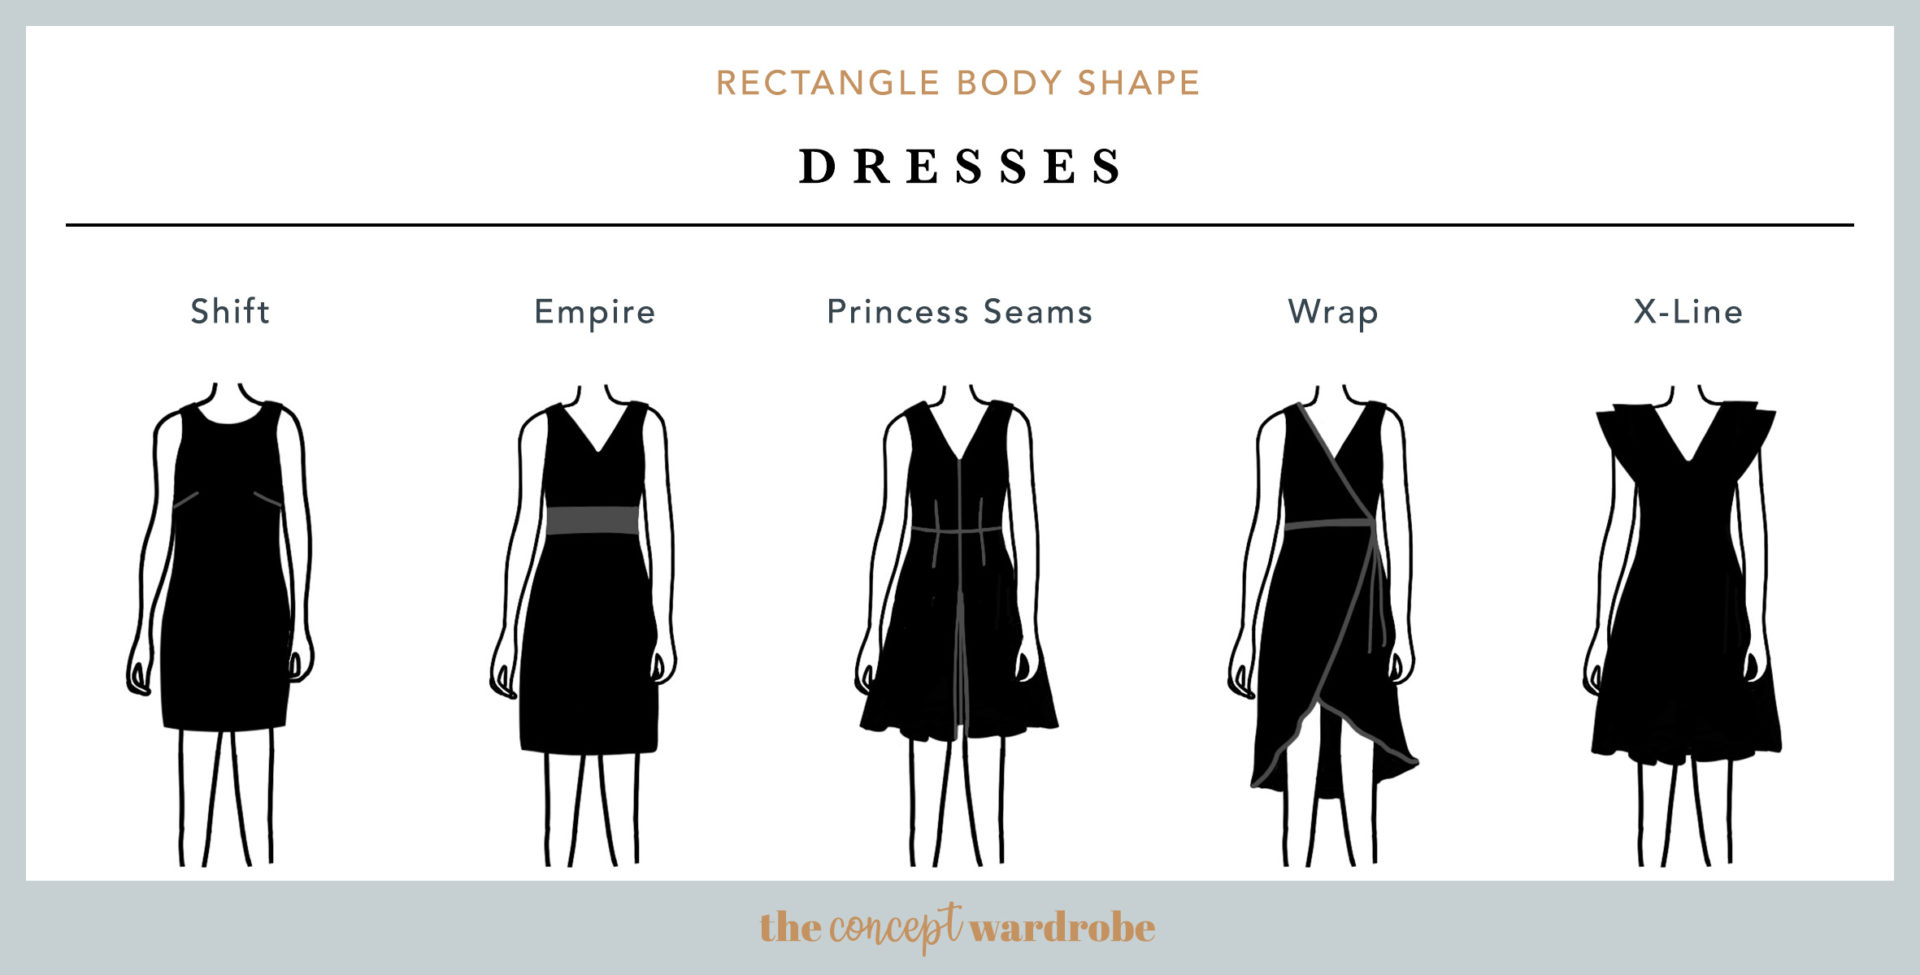 How To Dress The Rectangle Body Shape  the concept wardrobe